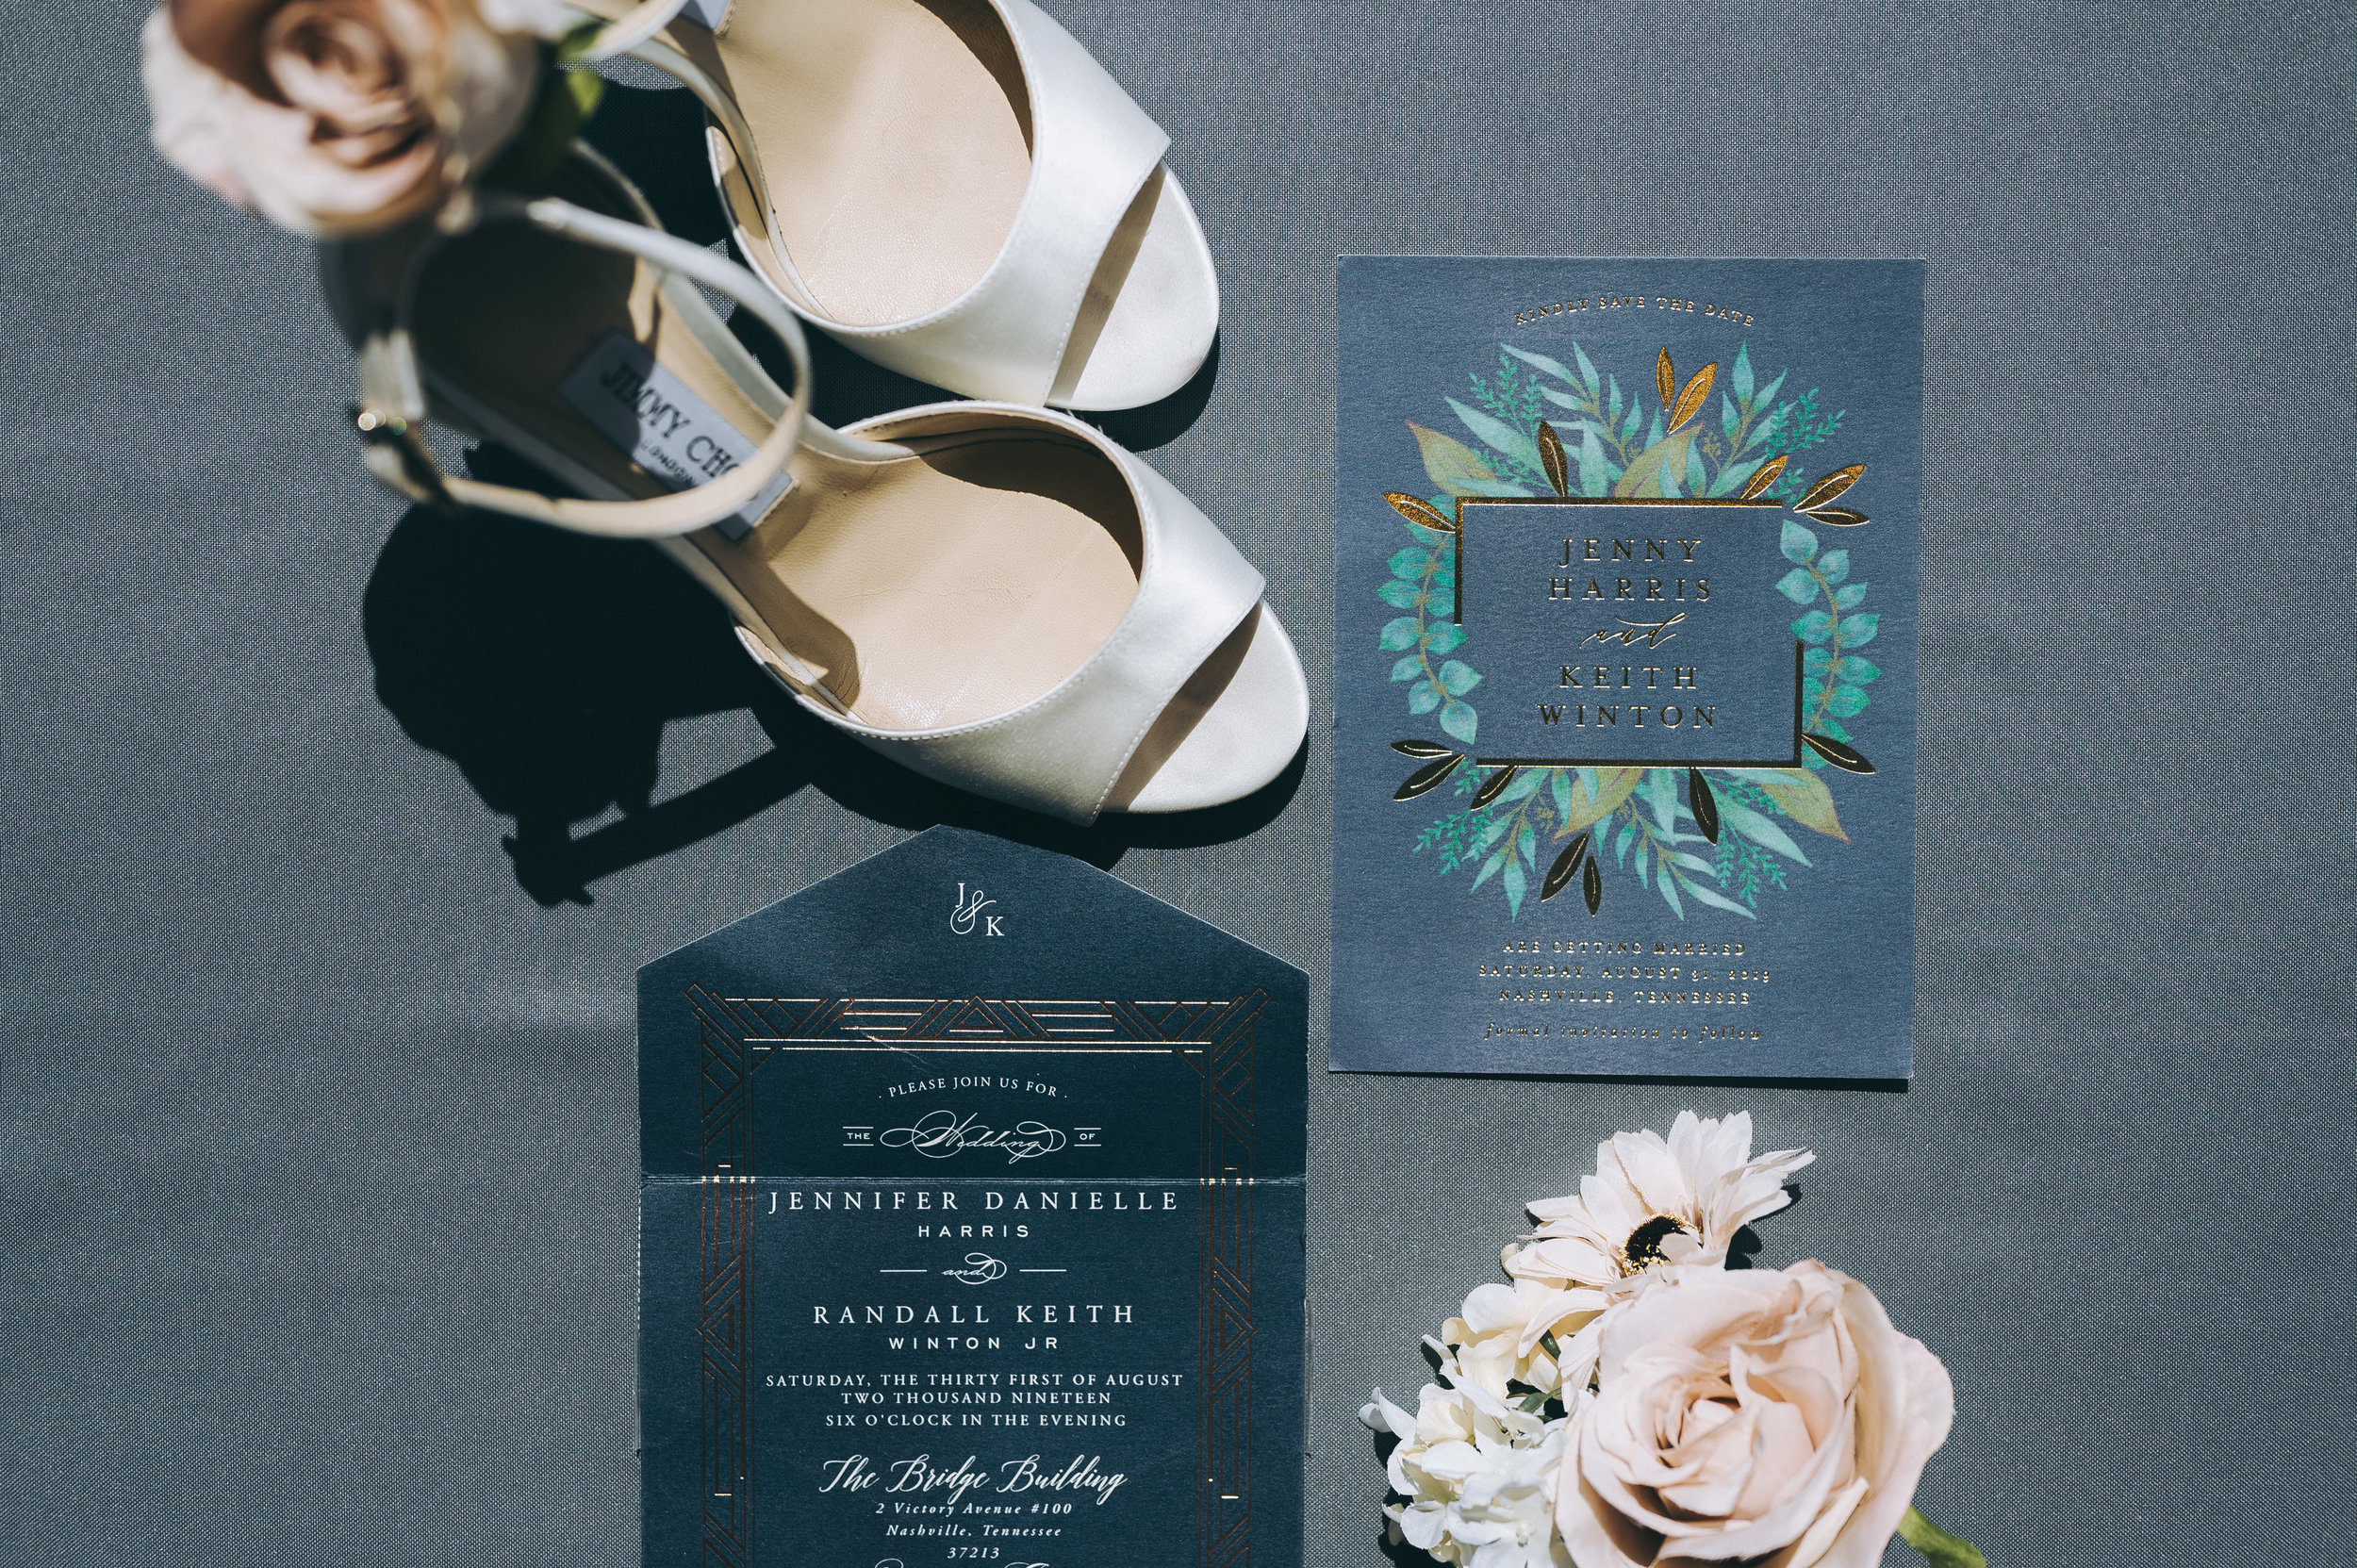 Jenny + Keith Nashville Wedding - Details Nashville